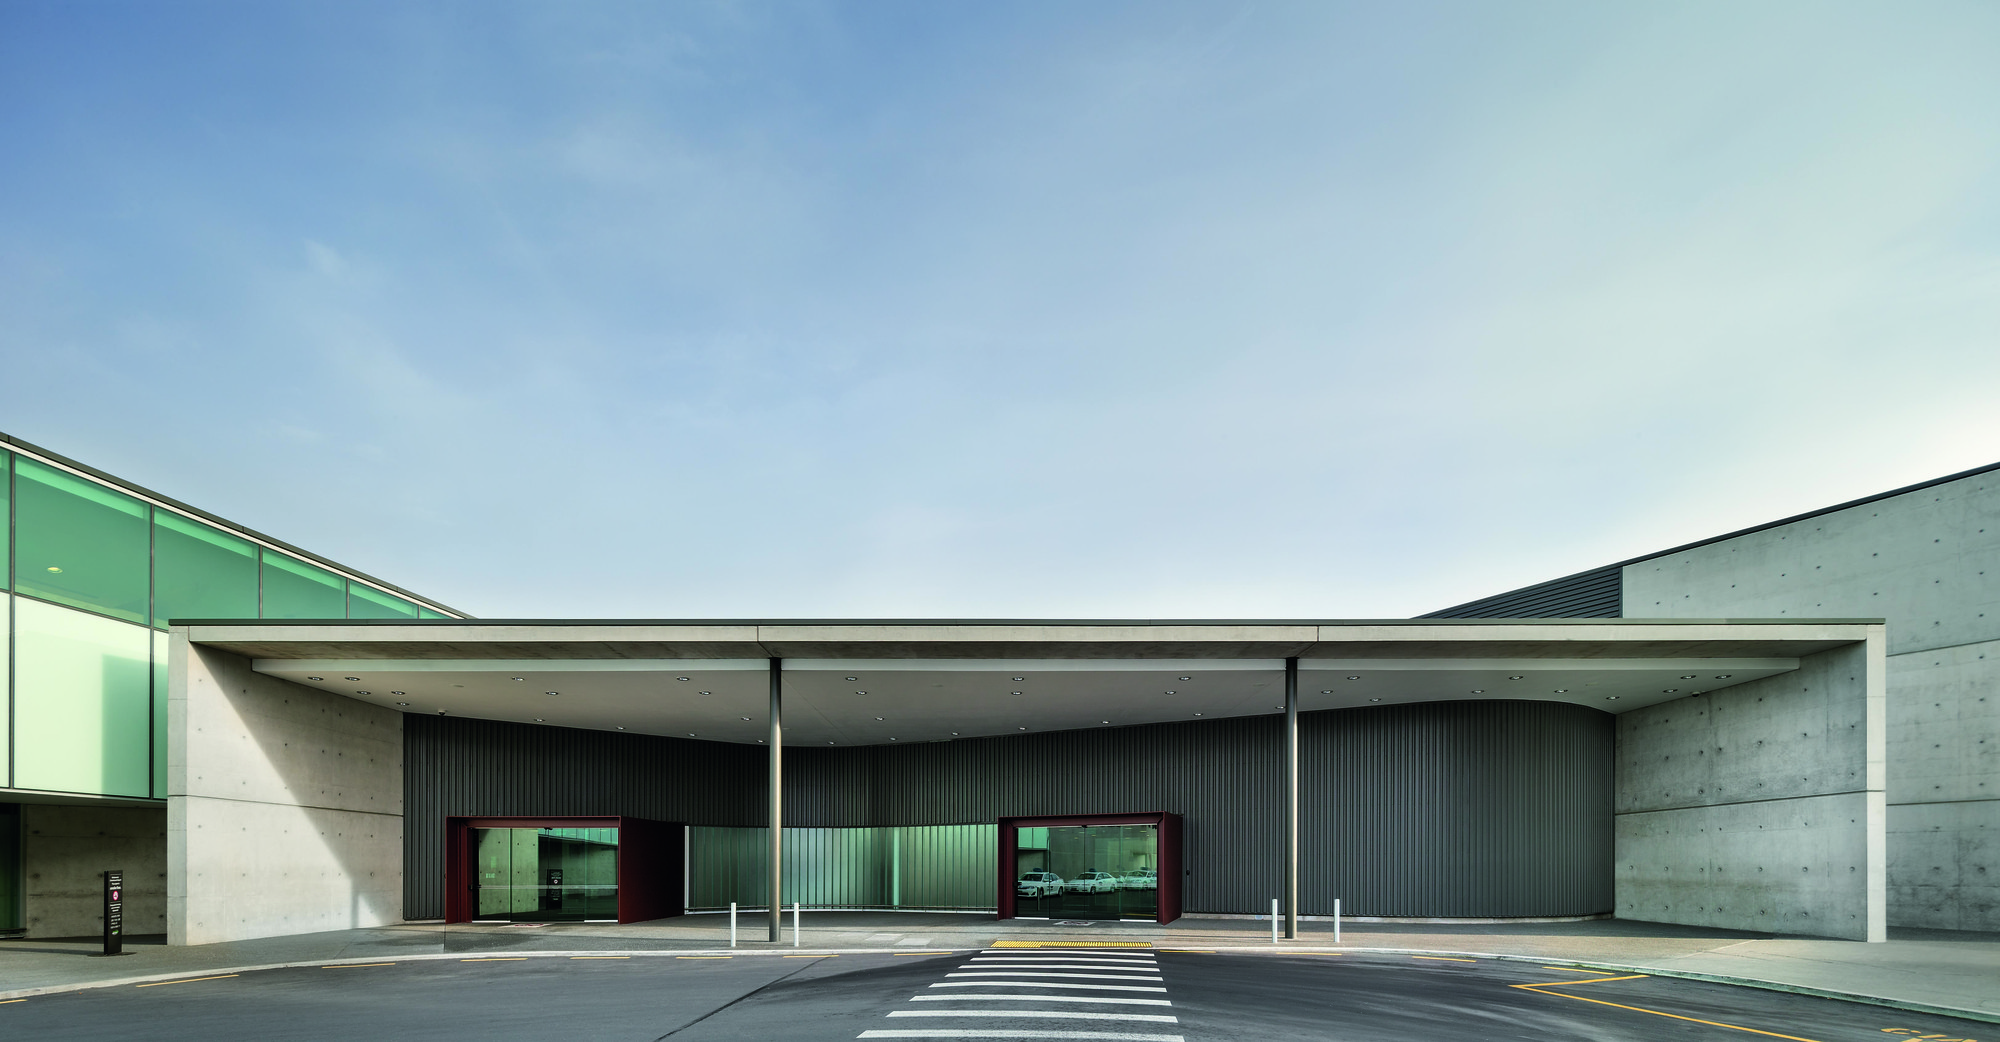 New zealand architecture awards 2014 winners announced for Architectus chch